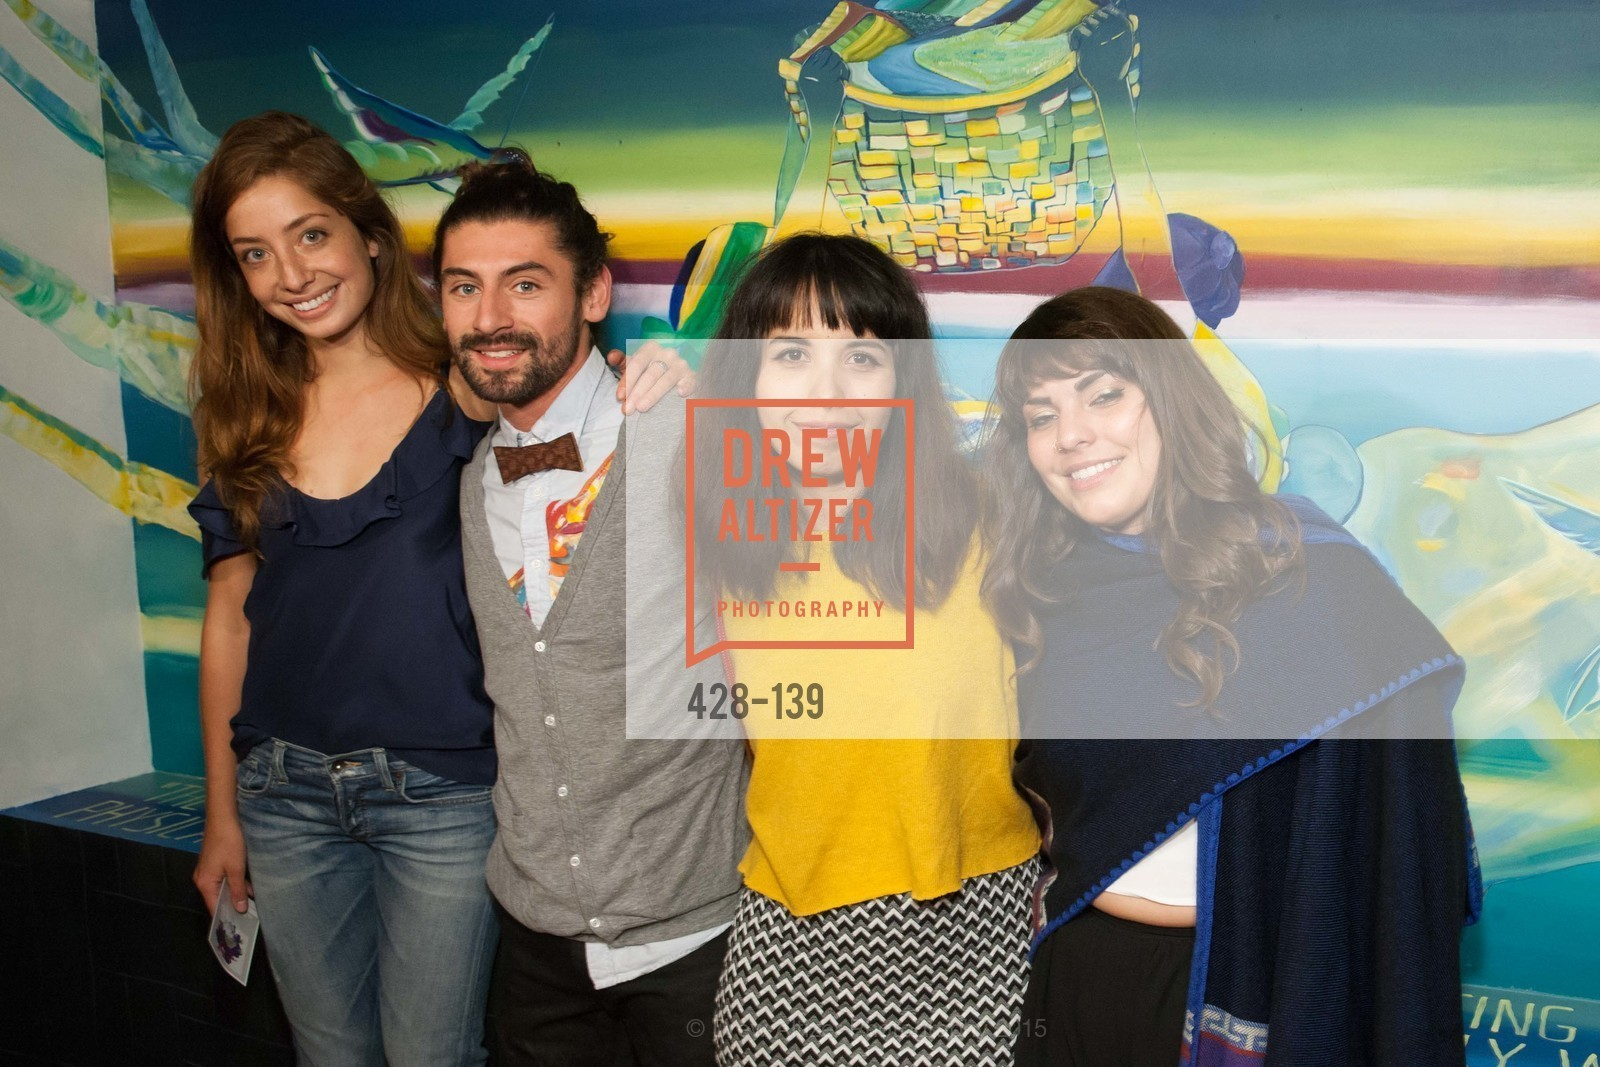 Zuri Ojeda, Ivan Lopez, Lucia Leal, Alexa Trevino, Homeless Prenatal Program Our House, Our Mission Gala, 2500 18th St, May 29th, 2015,Drew Altizer, Drew Altizer Photography, full-service agency, private events, San Francisco photographer, photographer california